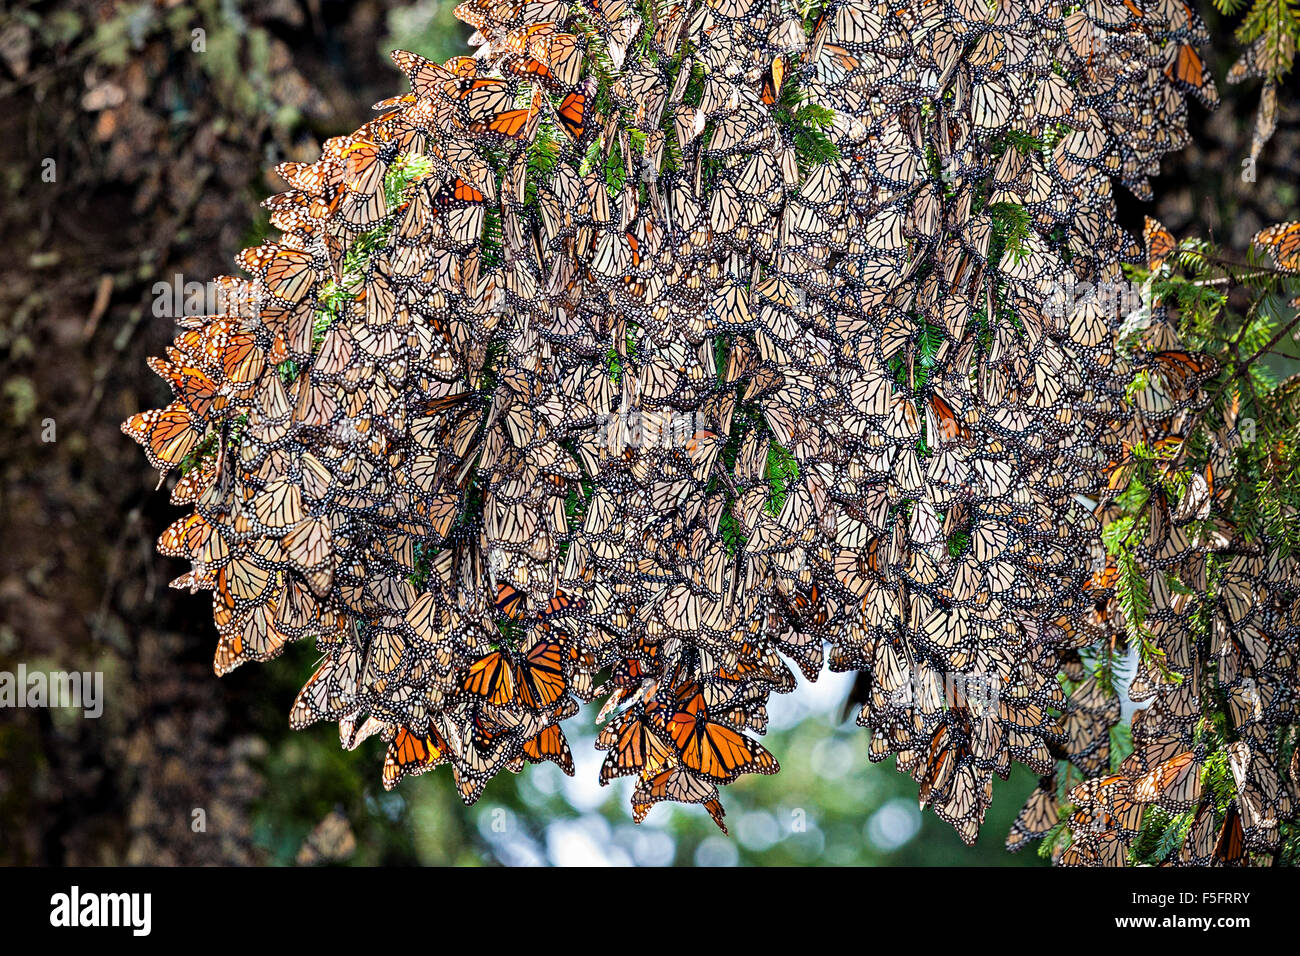 Hundreds of monach butterflies cling to an oyamel fir tree in the Rosario Sanctuary, Michoacan, Mexico. - Stock Image